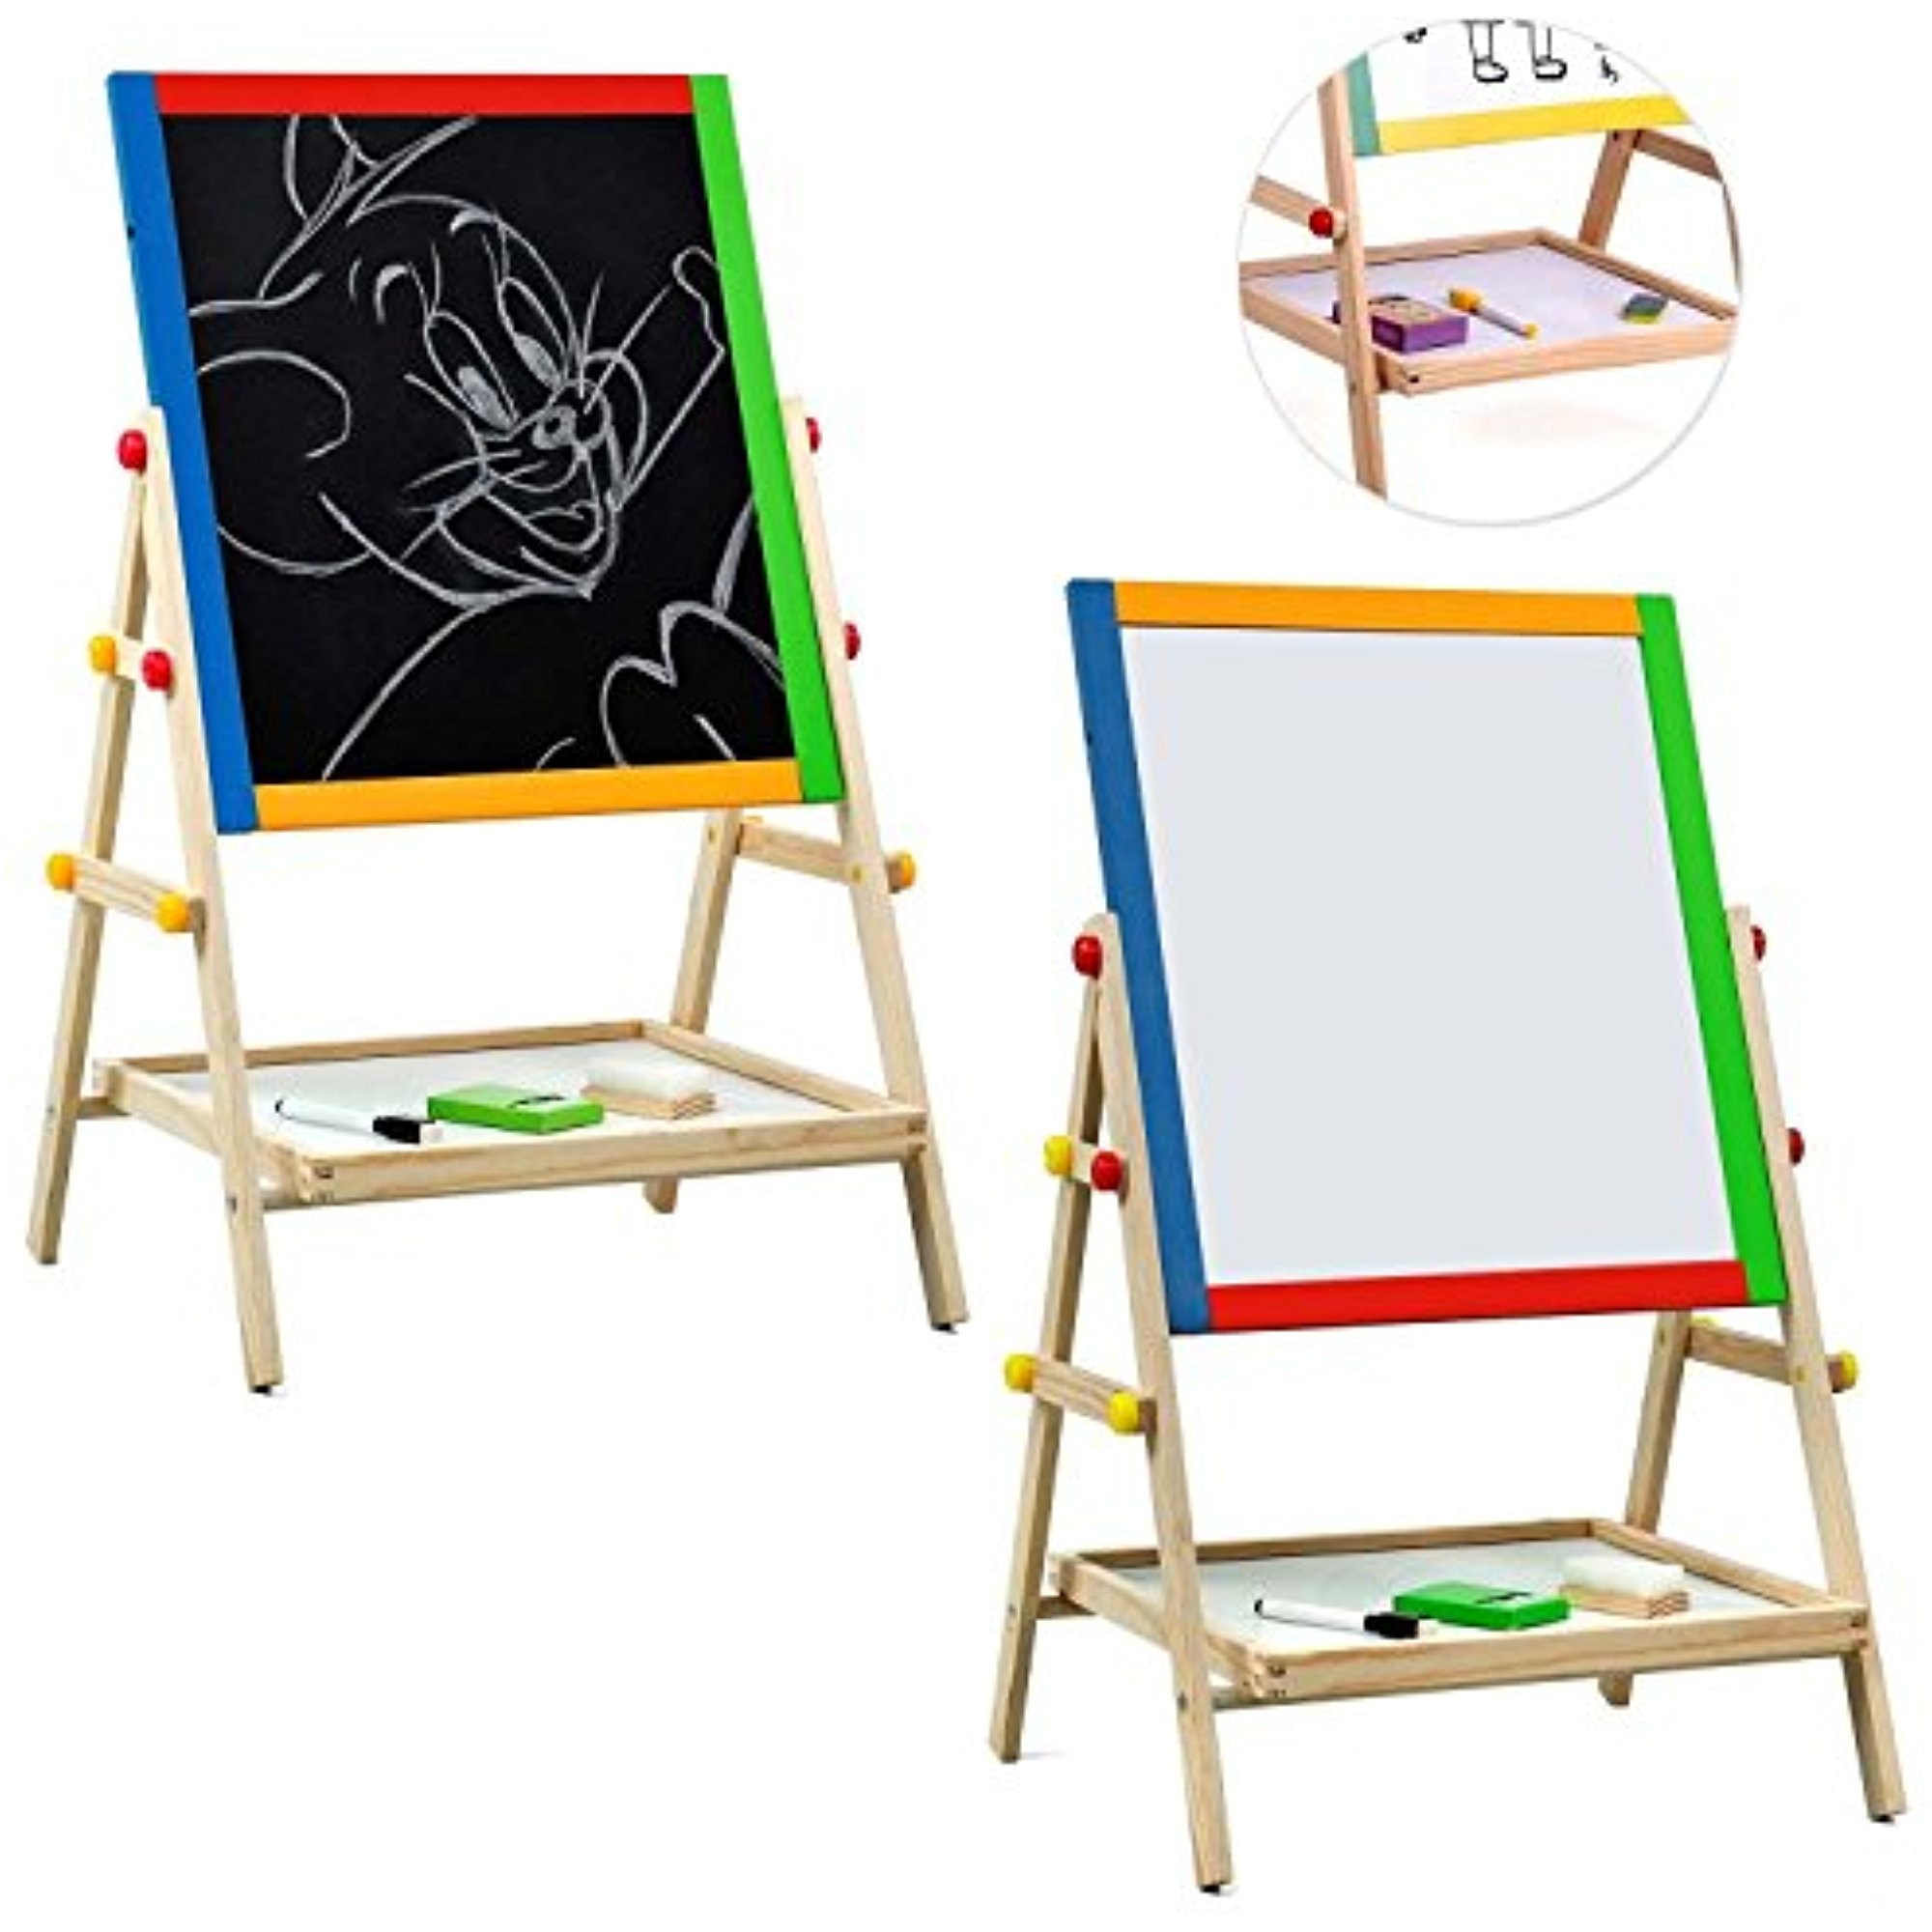 Estink draw board for kids,  2 in 1 Black / White Double Sided Wooden Easel Chalk Drawing Board